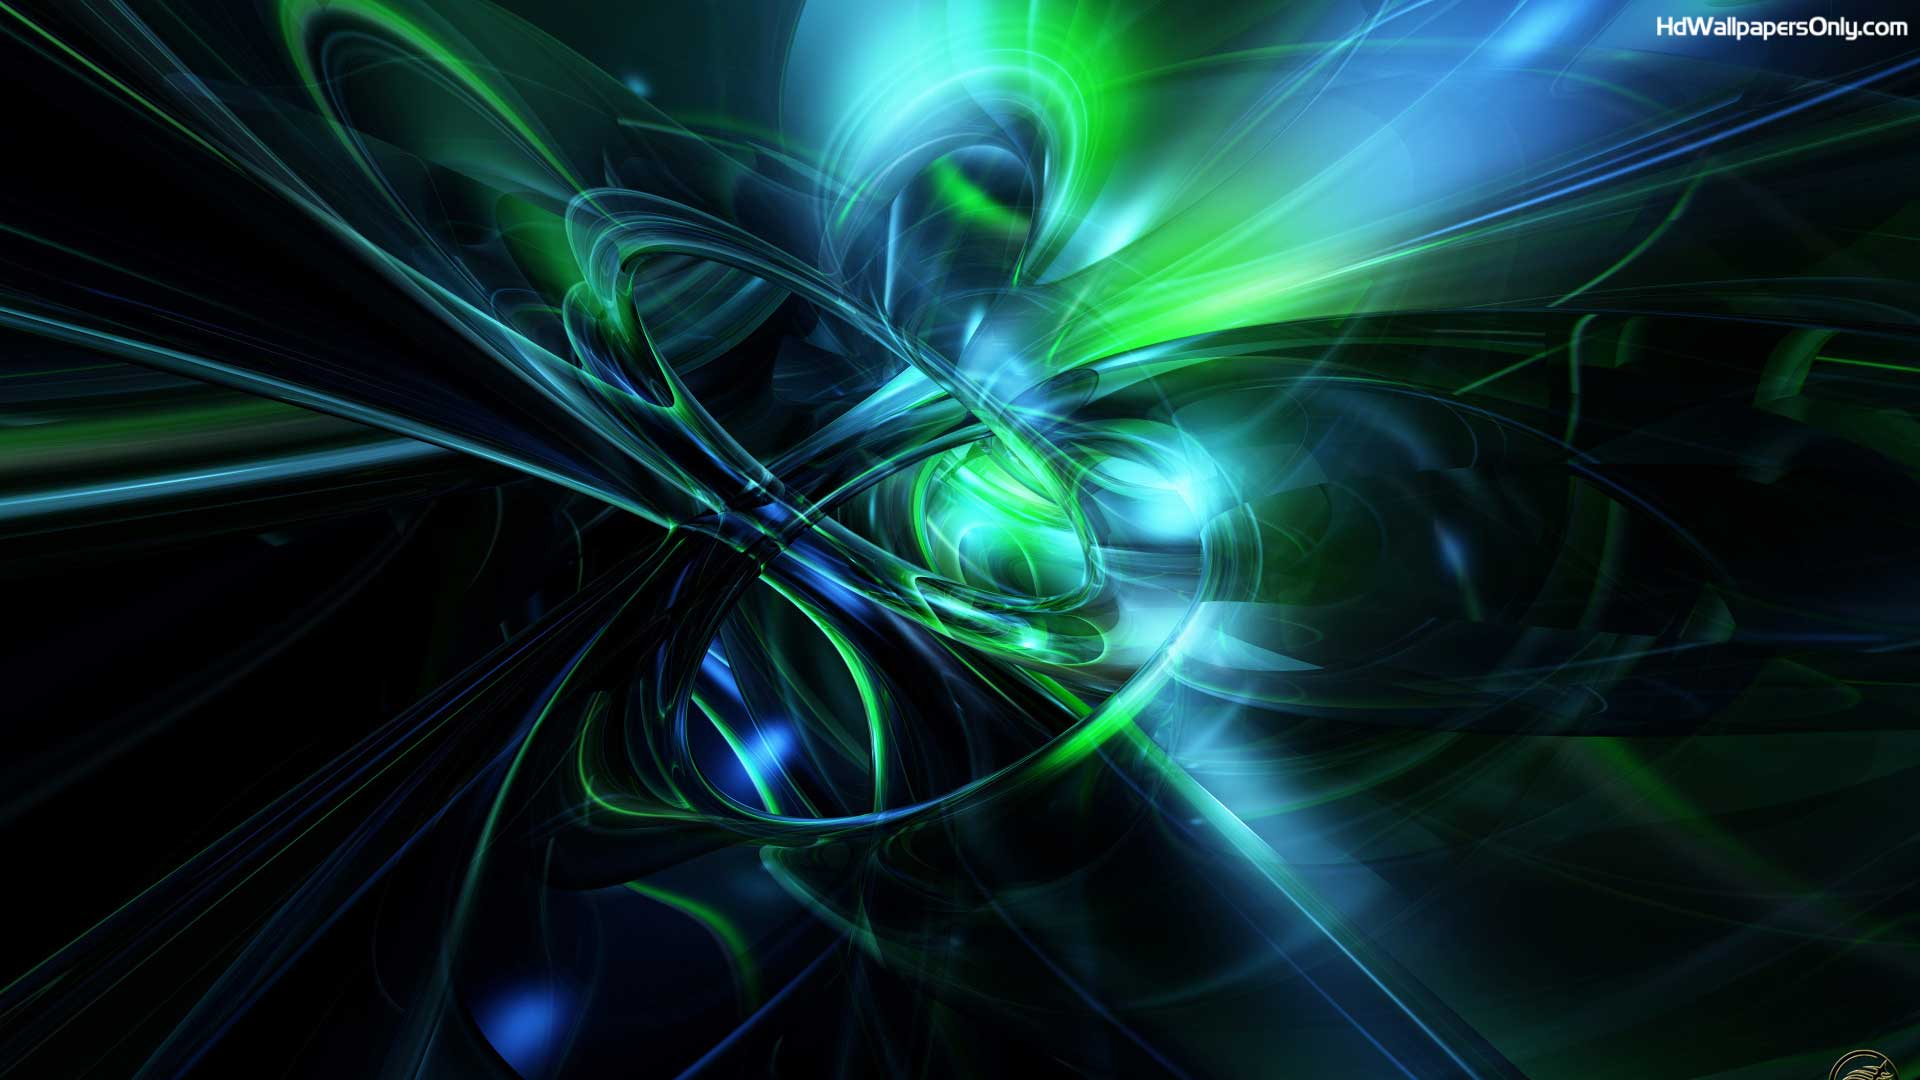 Cool HD Wallpapers 1080p